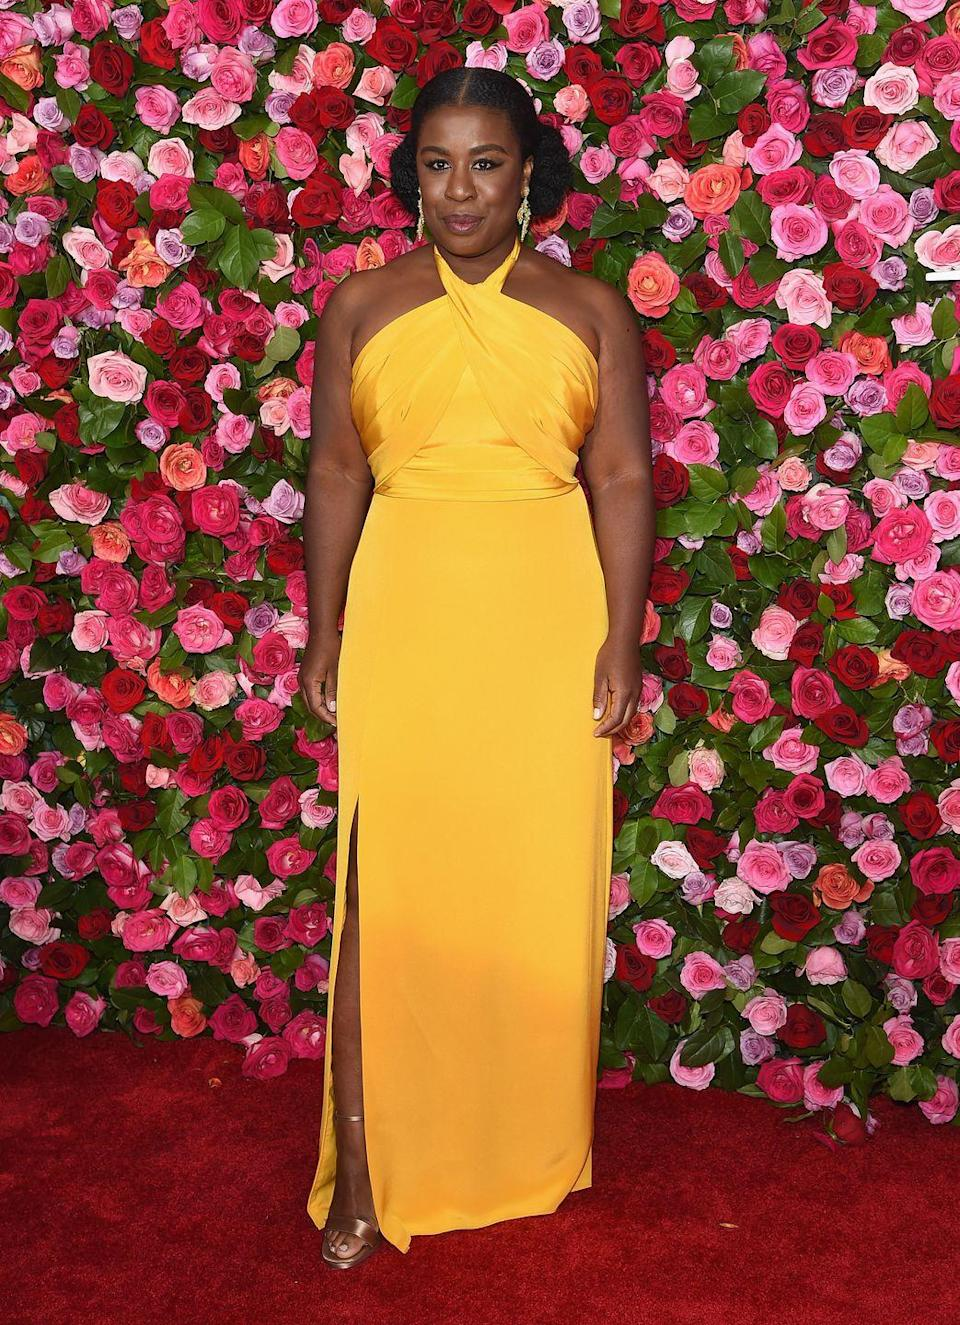 <p>The actress wore a yellow gown to the Tony Awards in New York.</p>